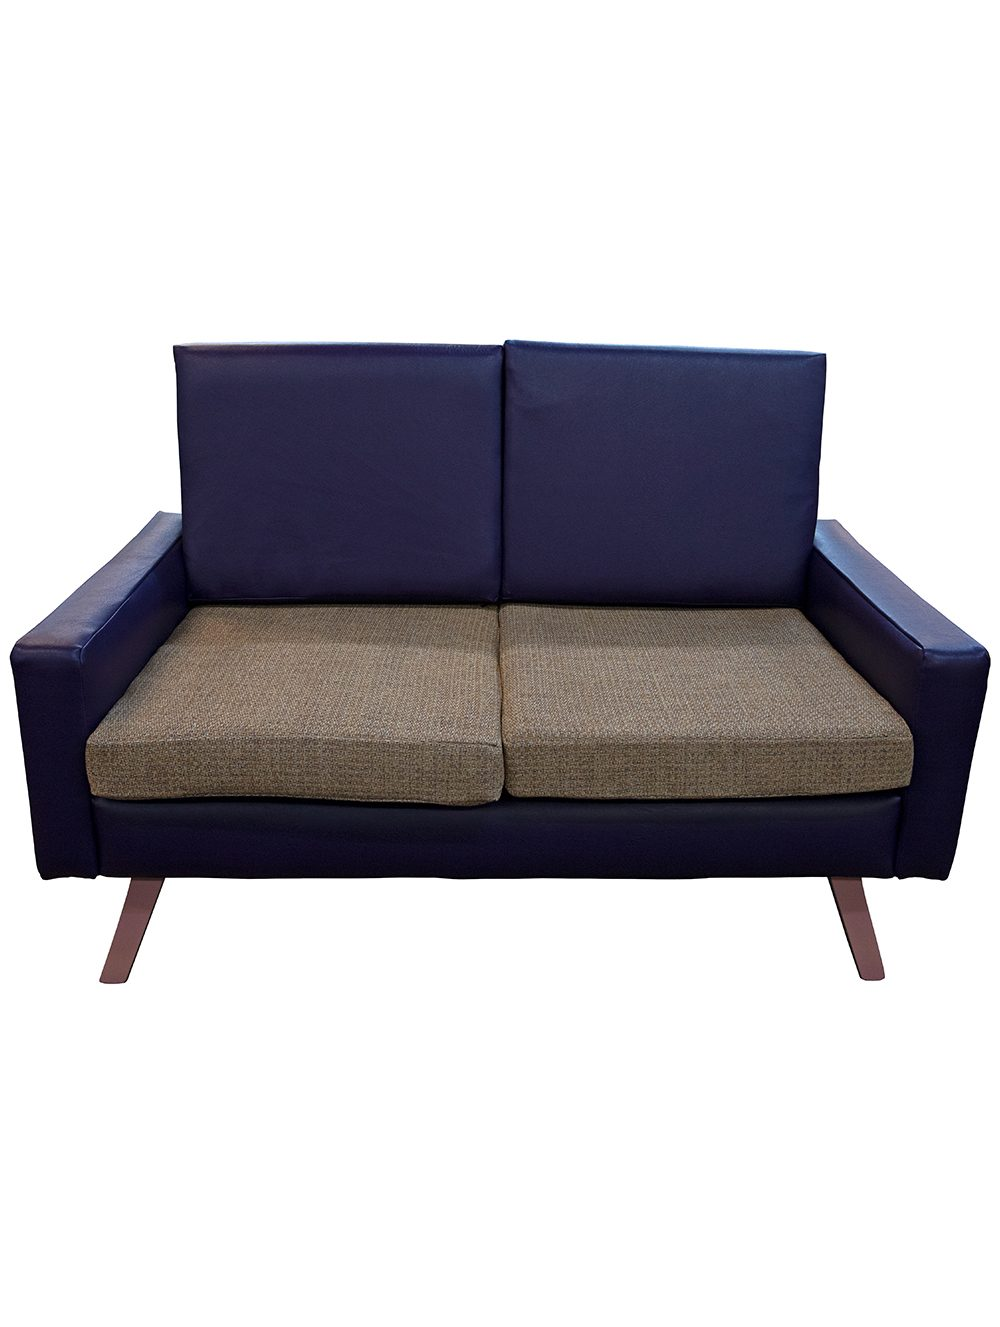 PurpleSofa-FRONT-WEB